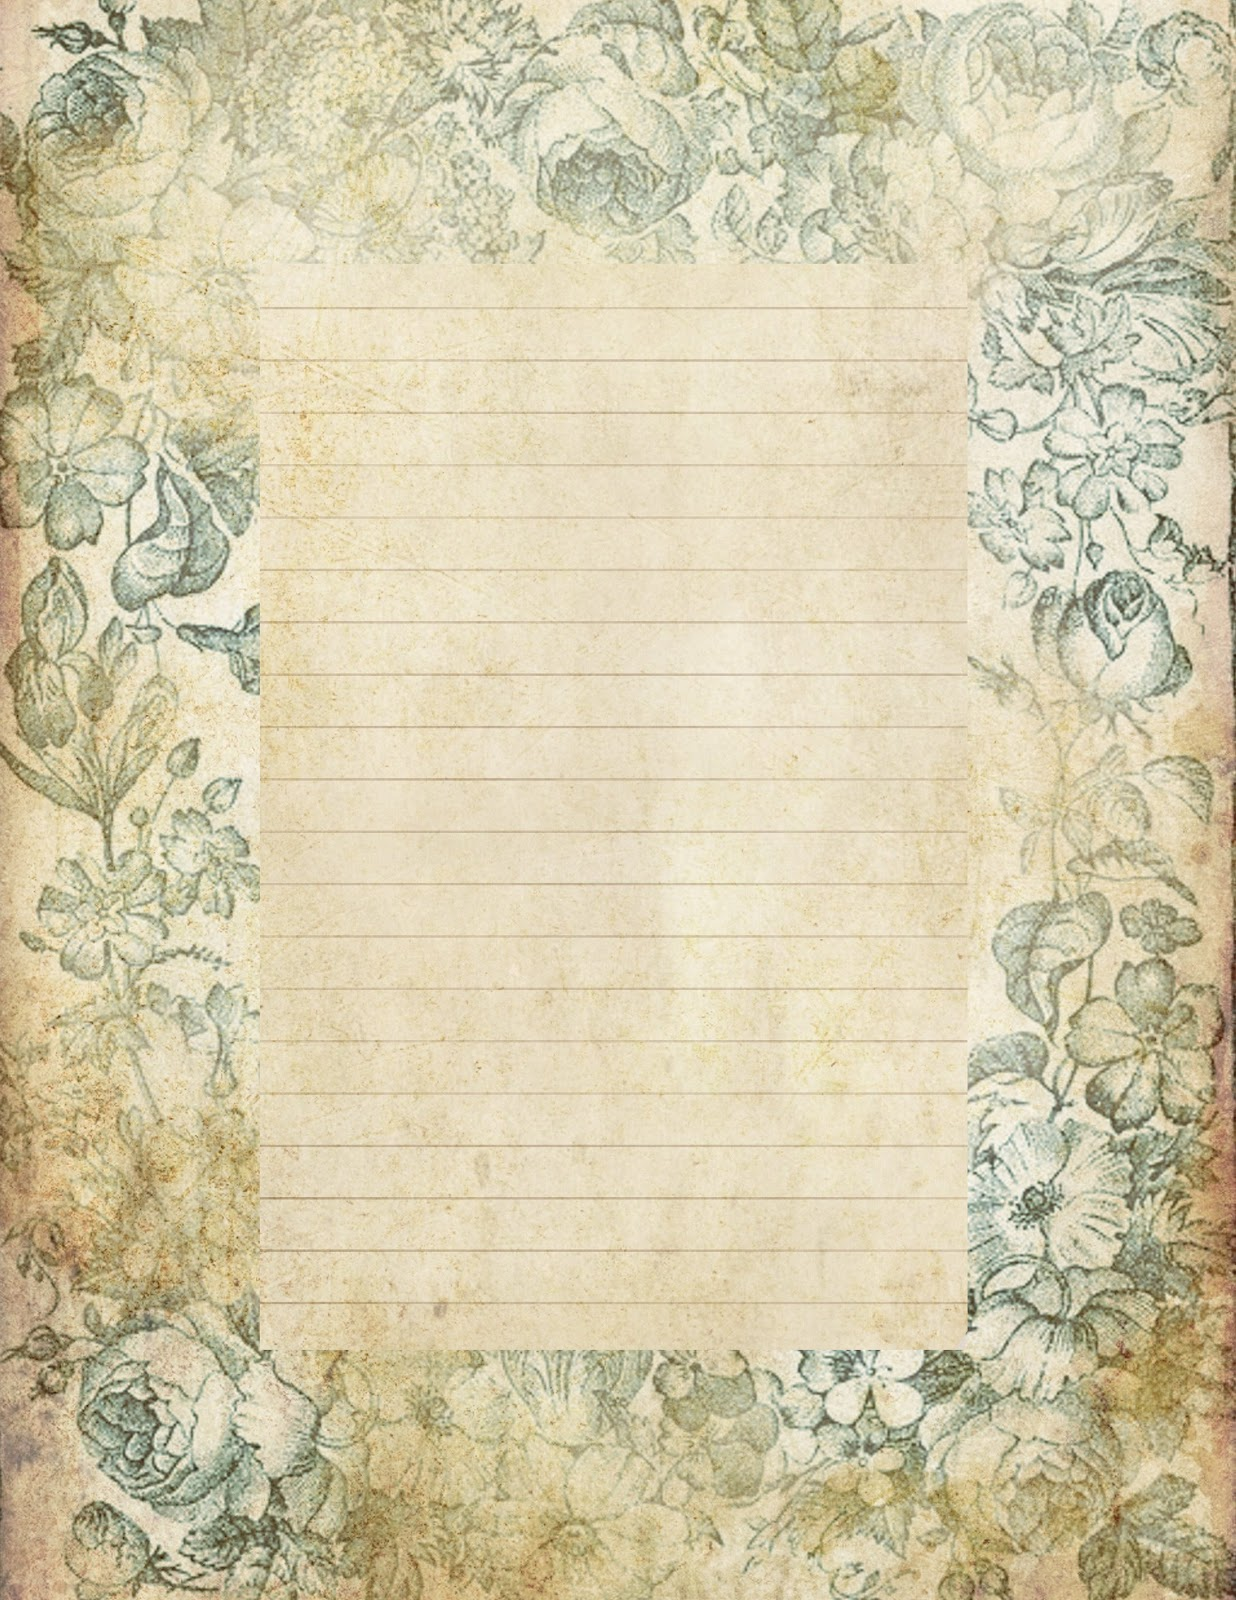 free vintage stationery templates